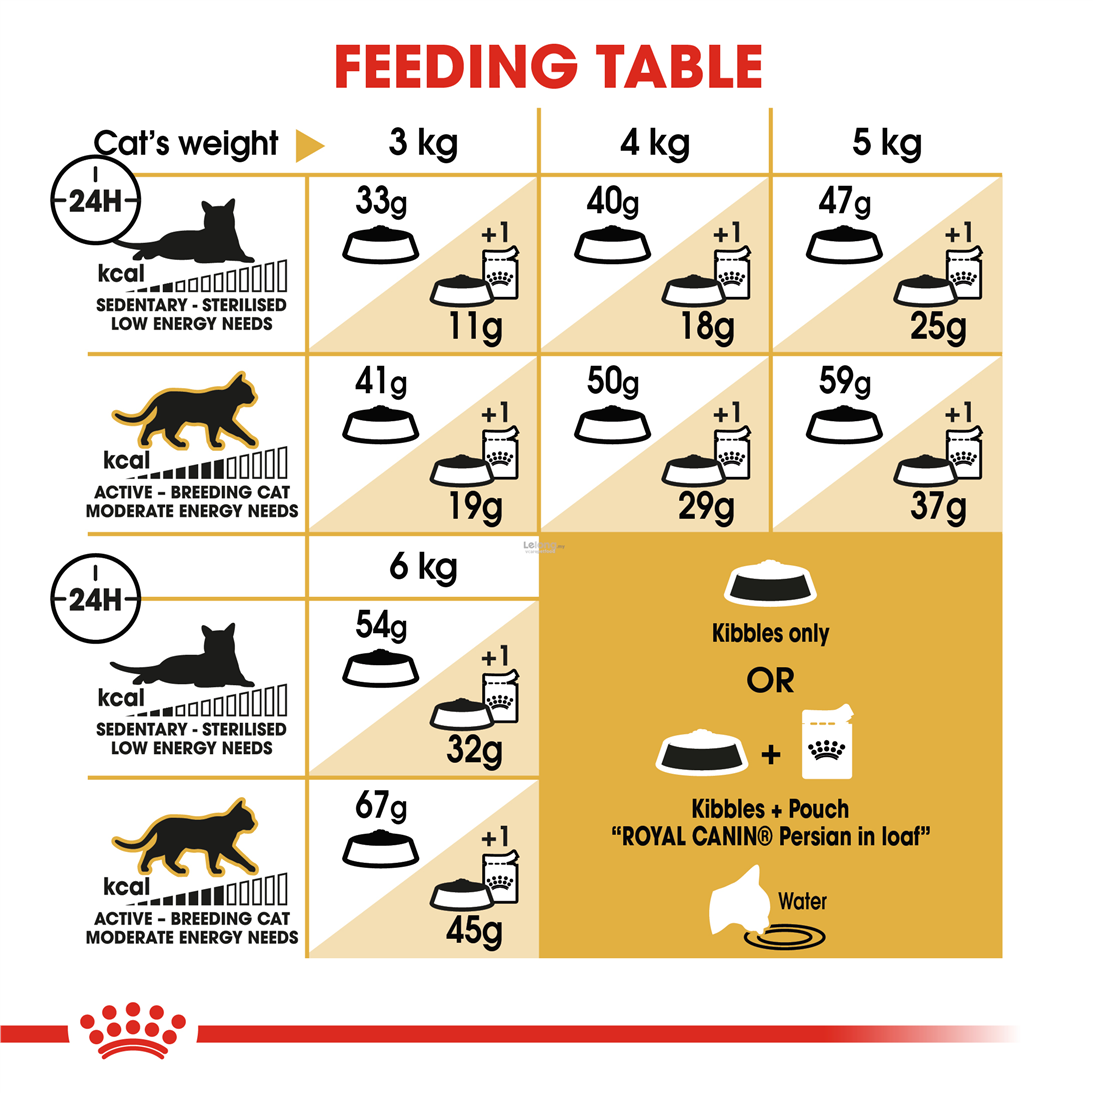 Royal Canin Persian Adult Cat Food - 4 Kg